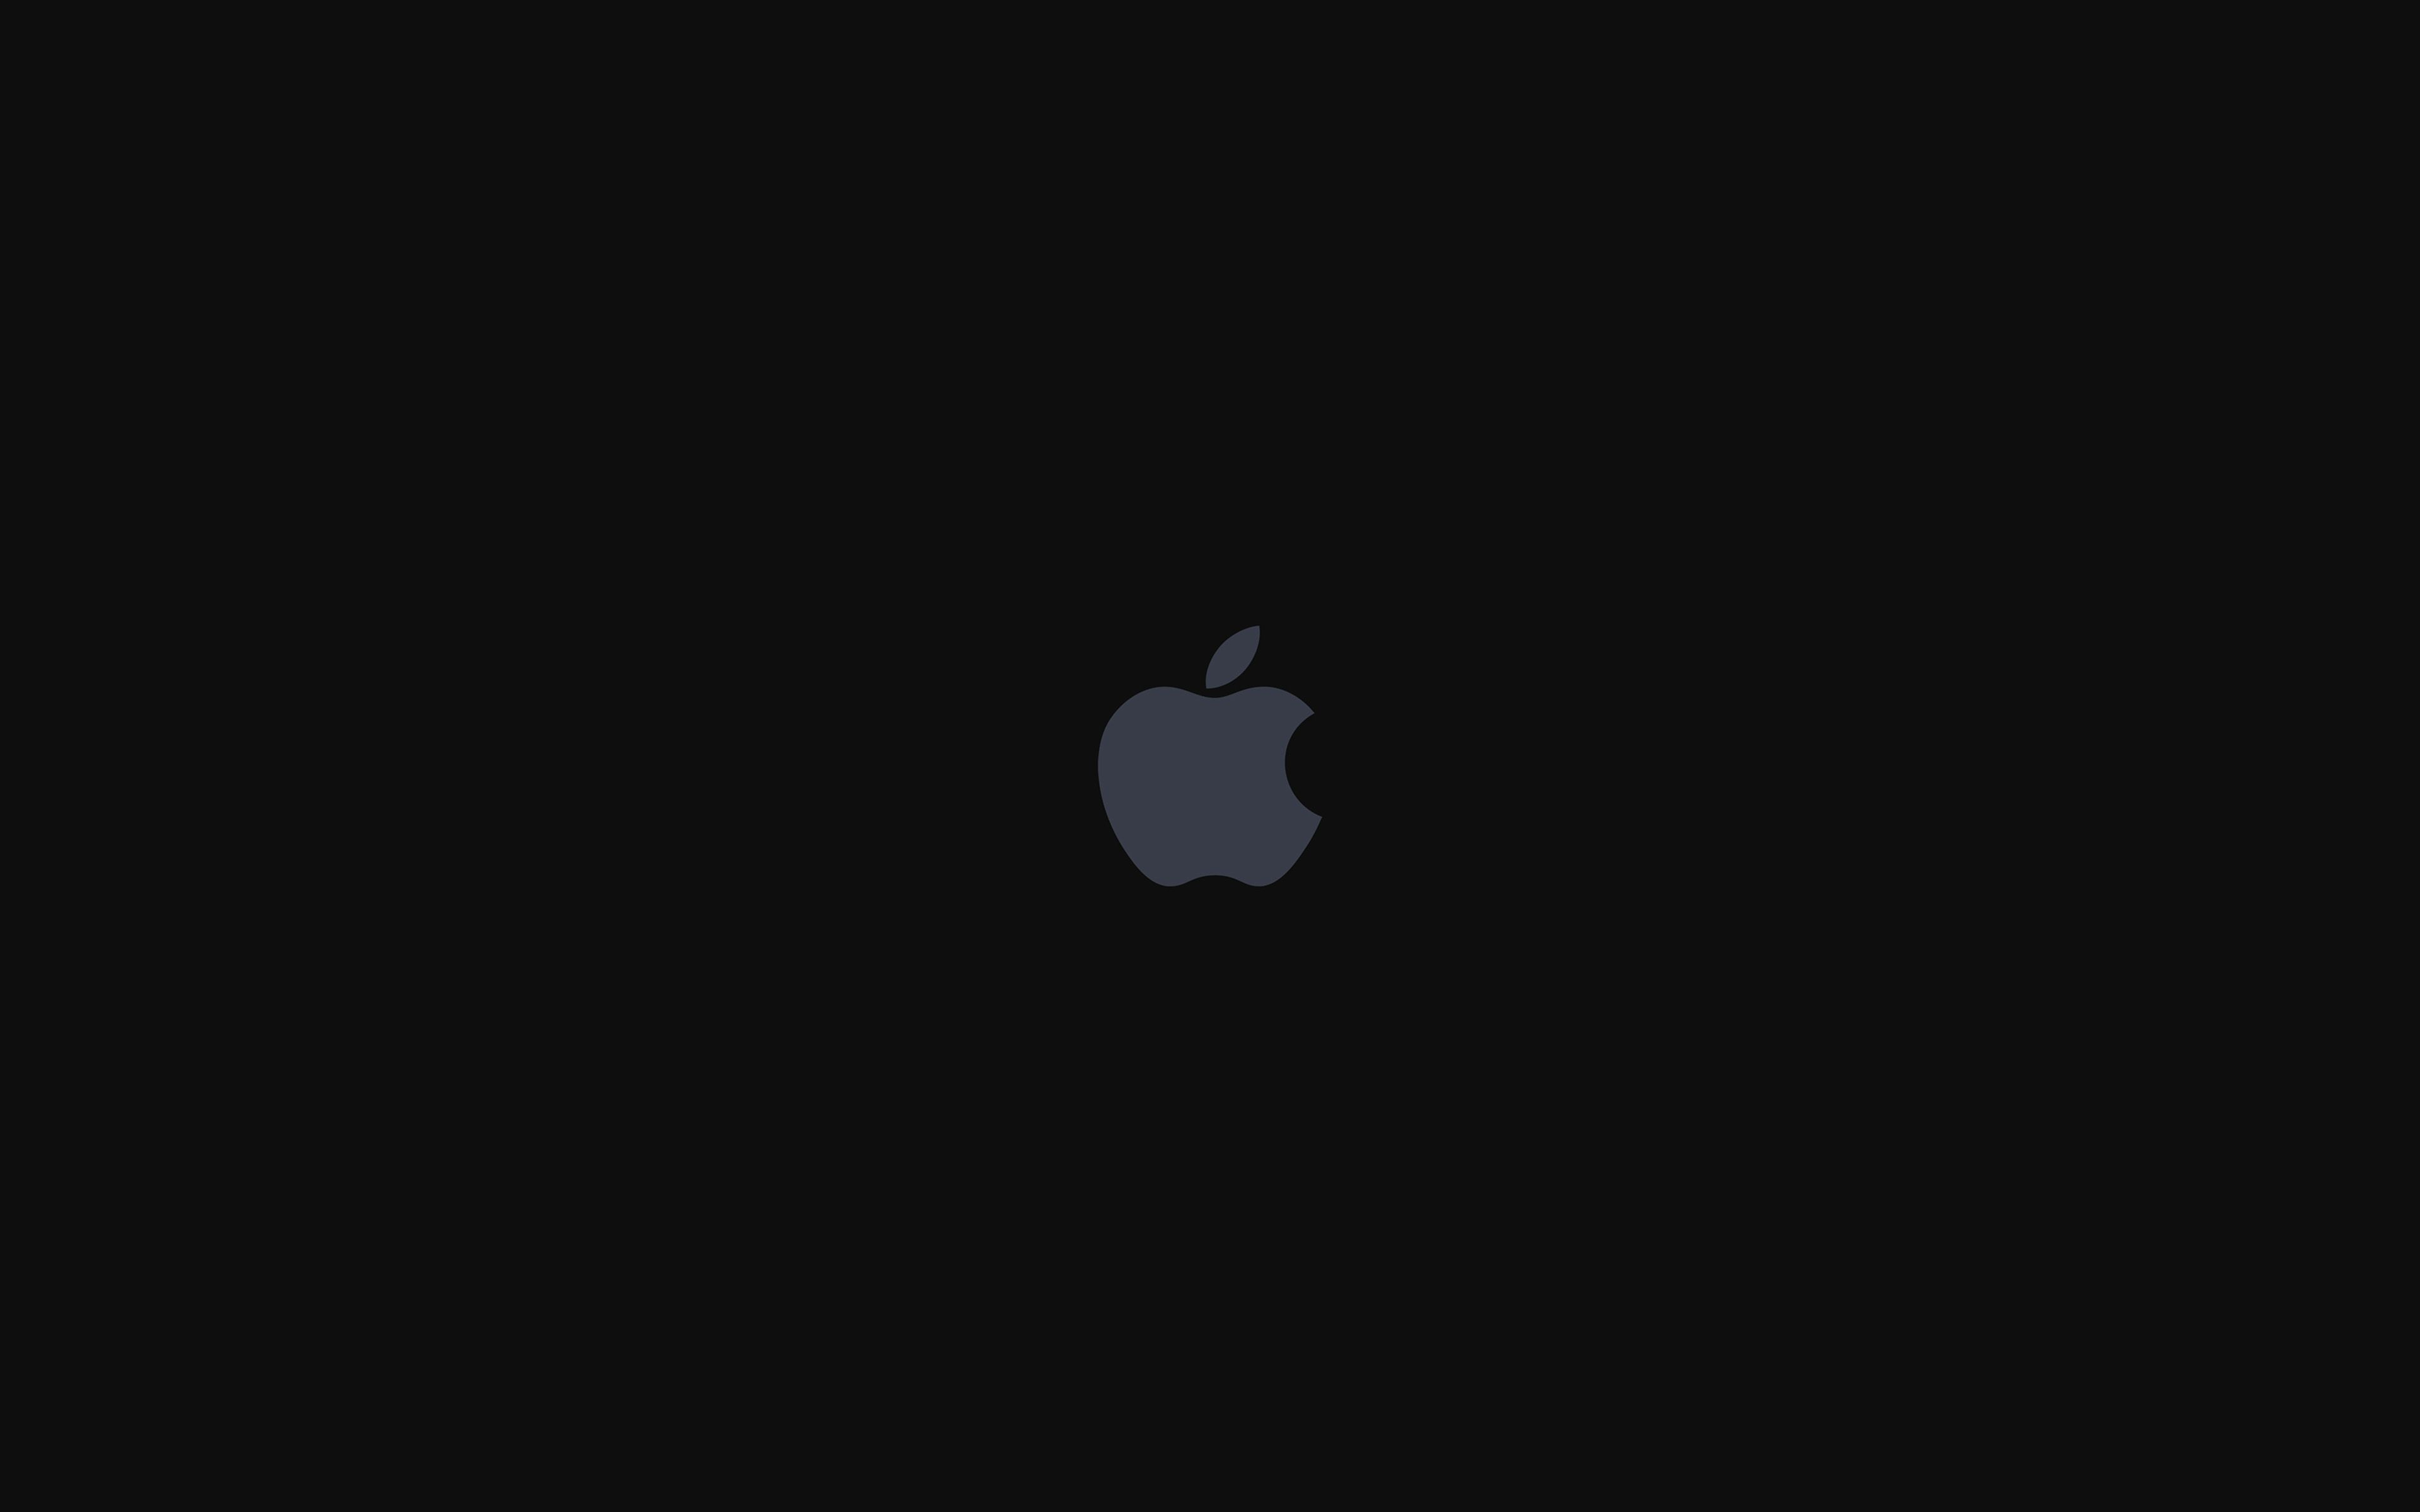 Black Apple Iphone Wallpapers On Wallpaperdog